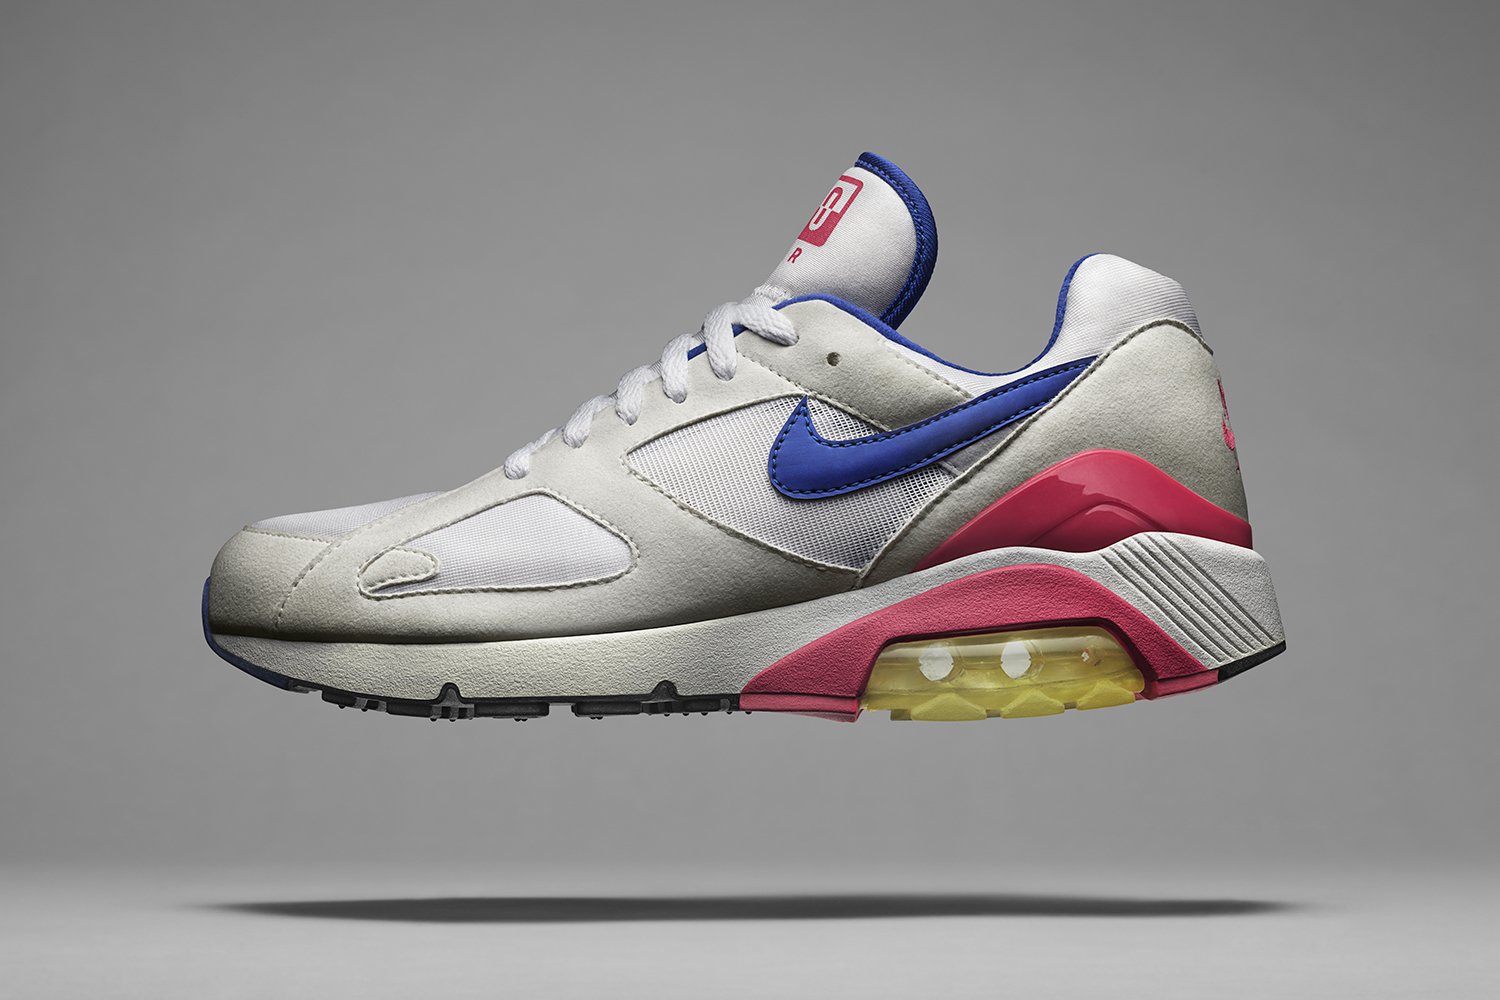 9bfb1b090bc The Beginner s Guide to OG Nike Air Max Colorways